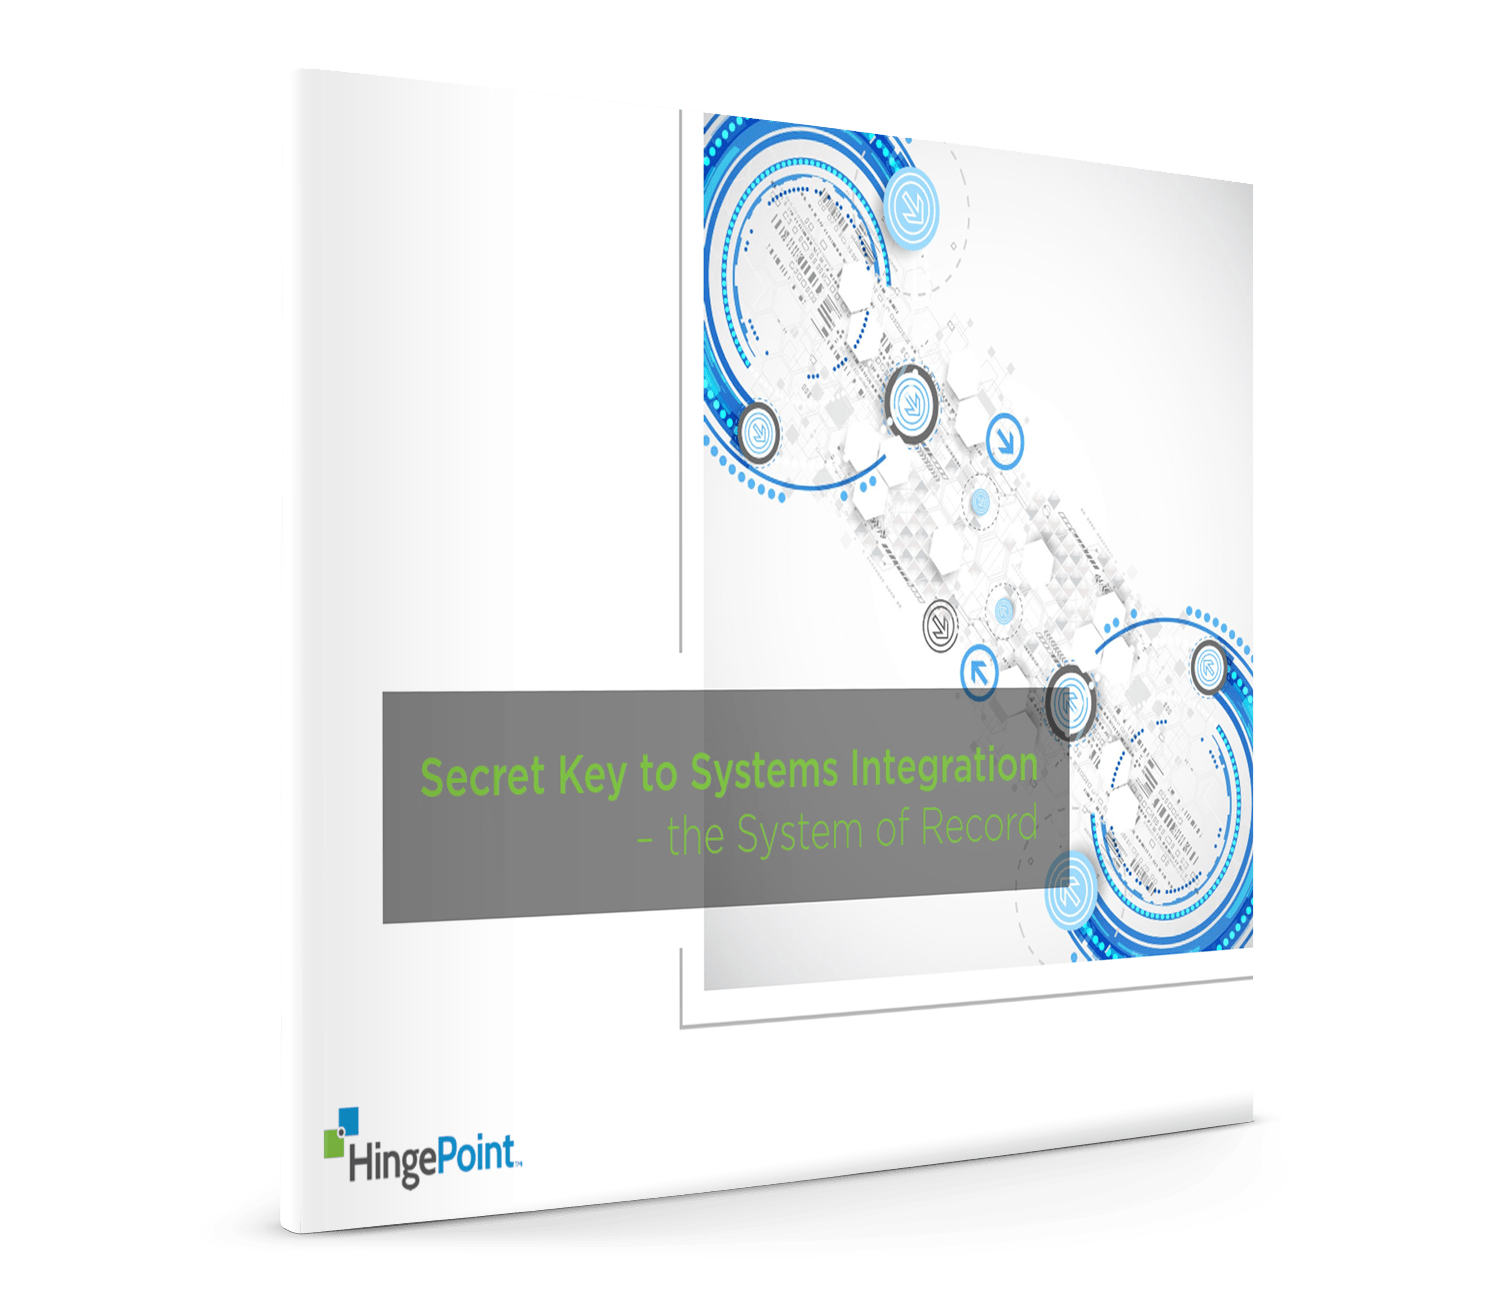 Secret Key to Systems Integration | HingePoint